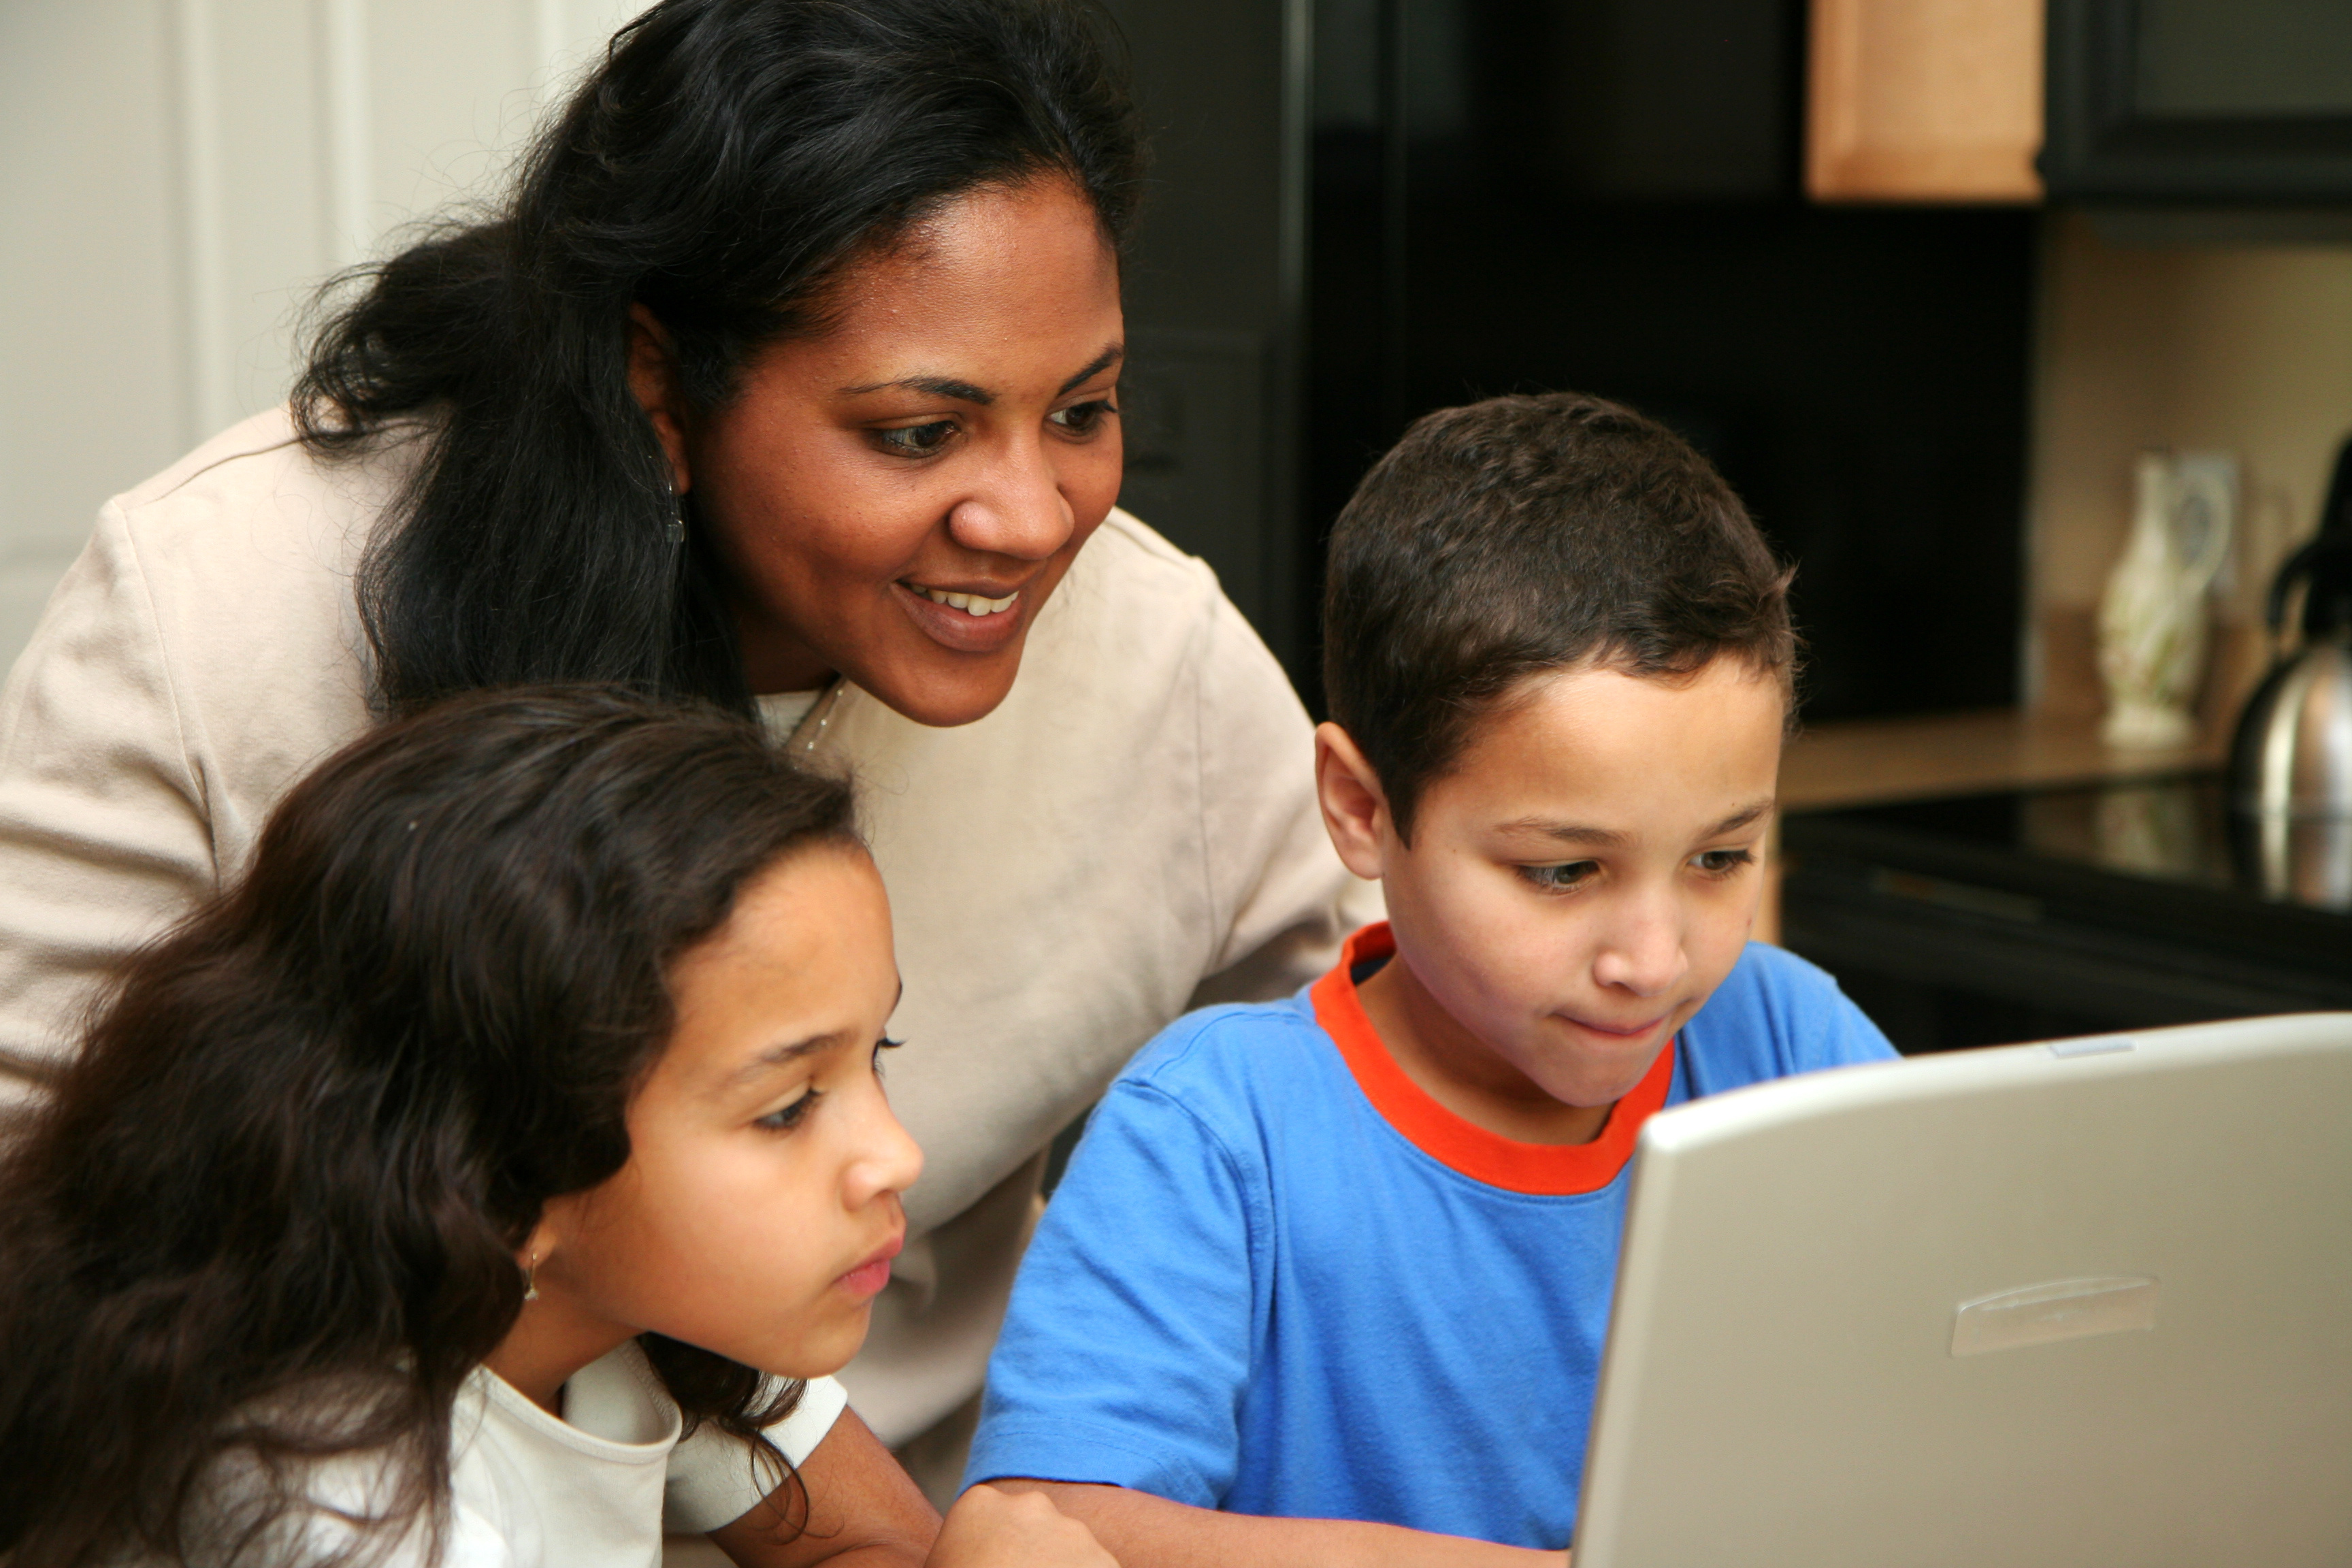 A mother and two children at home smiling and looking at a laptop screen.